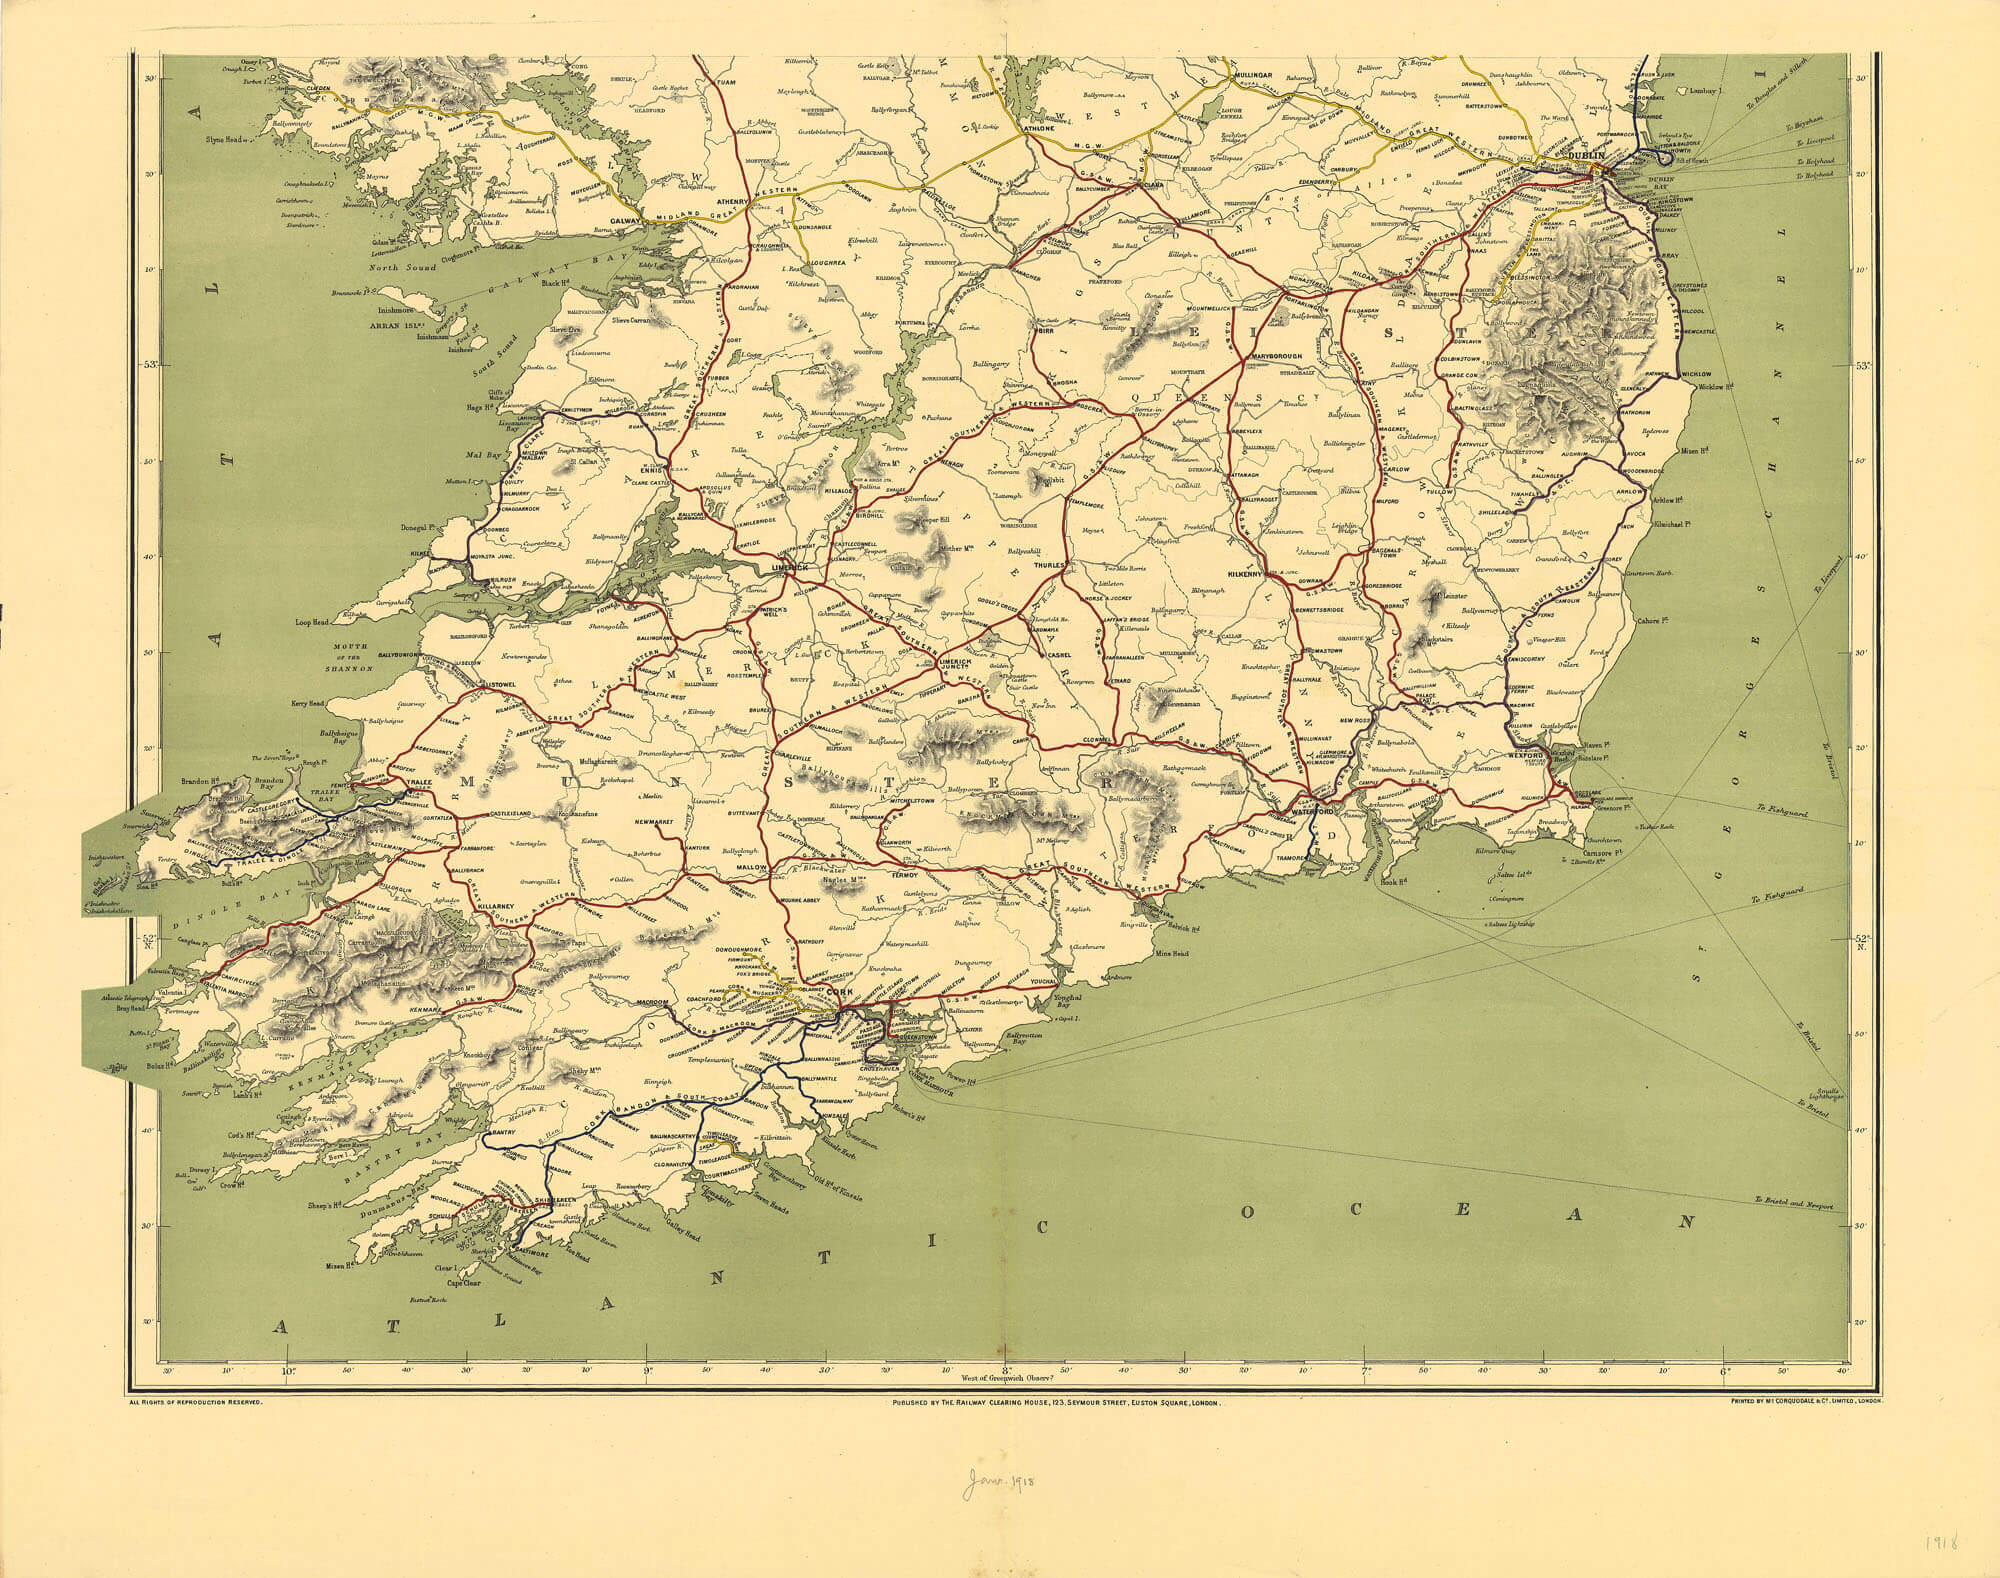 South Of Ireland Map.Ireland Maps Of Railways L Brown Collection